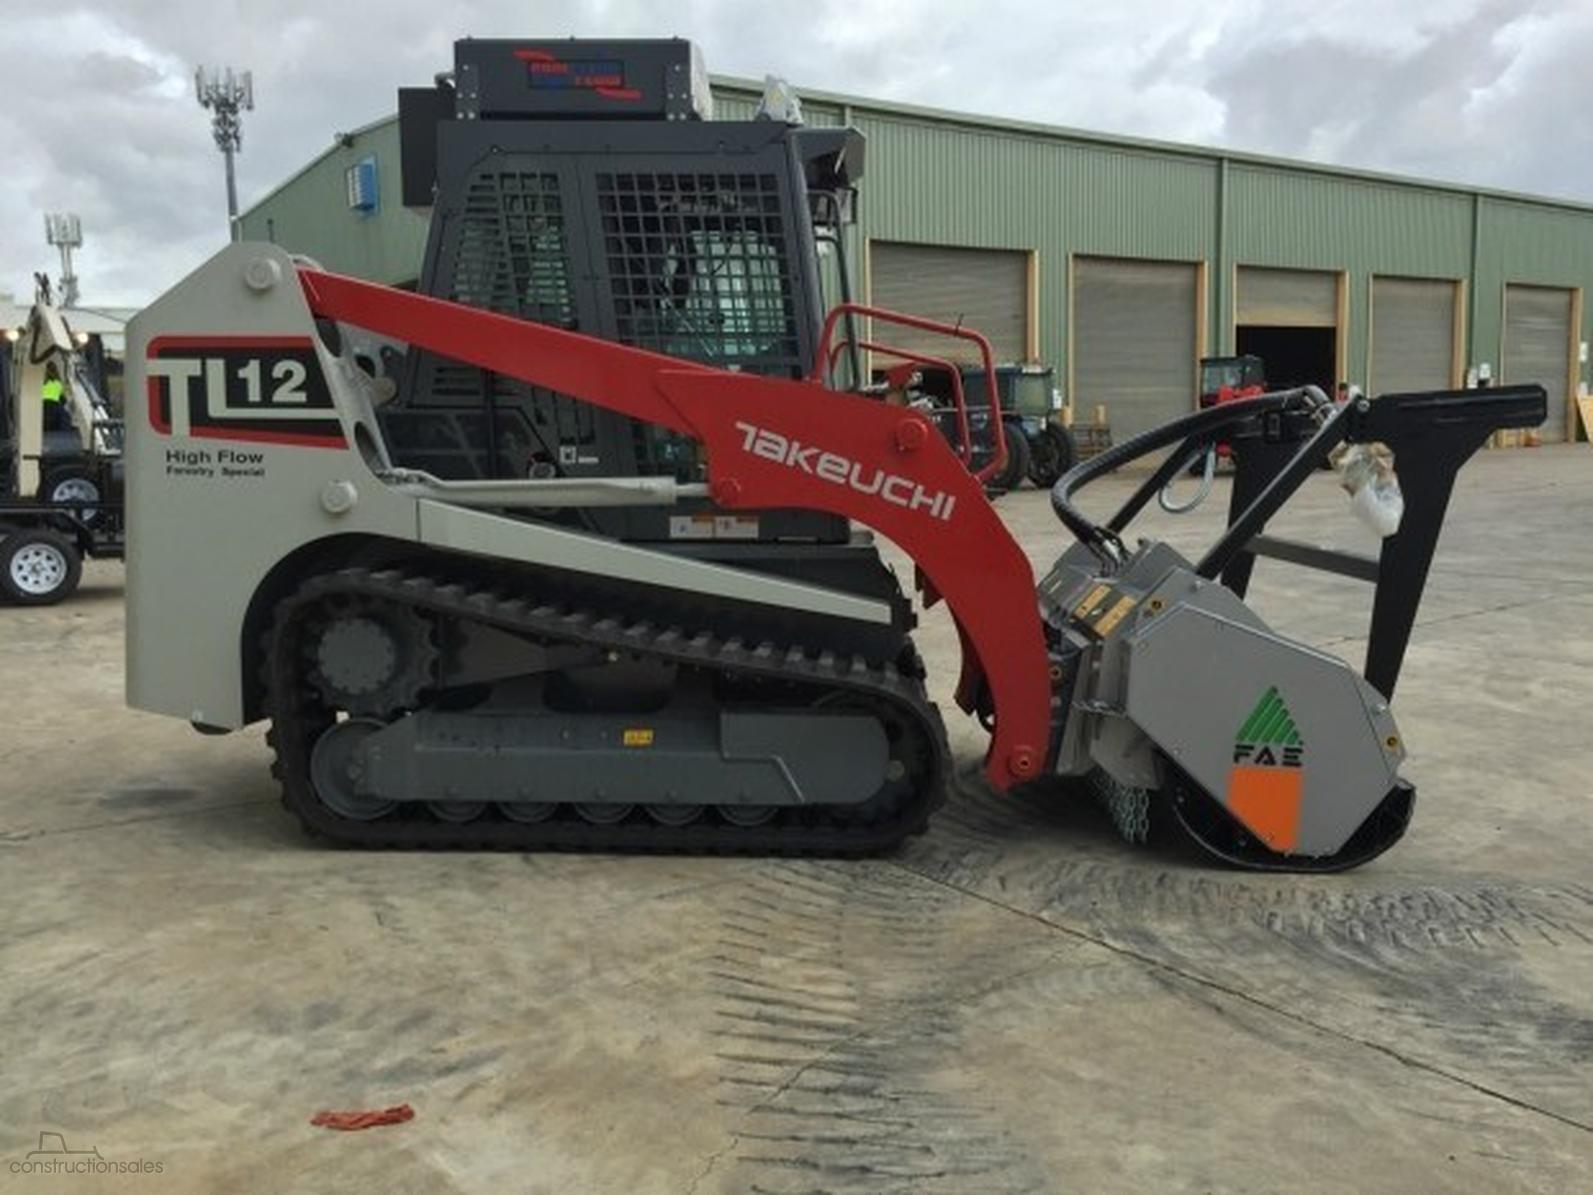 Takeuchi TL12 Forestry Special-OAG-AD-12534146